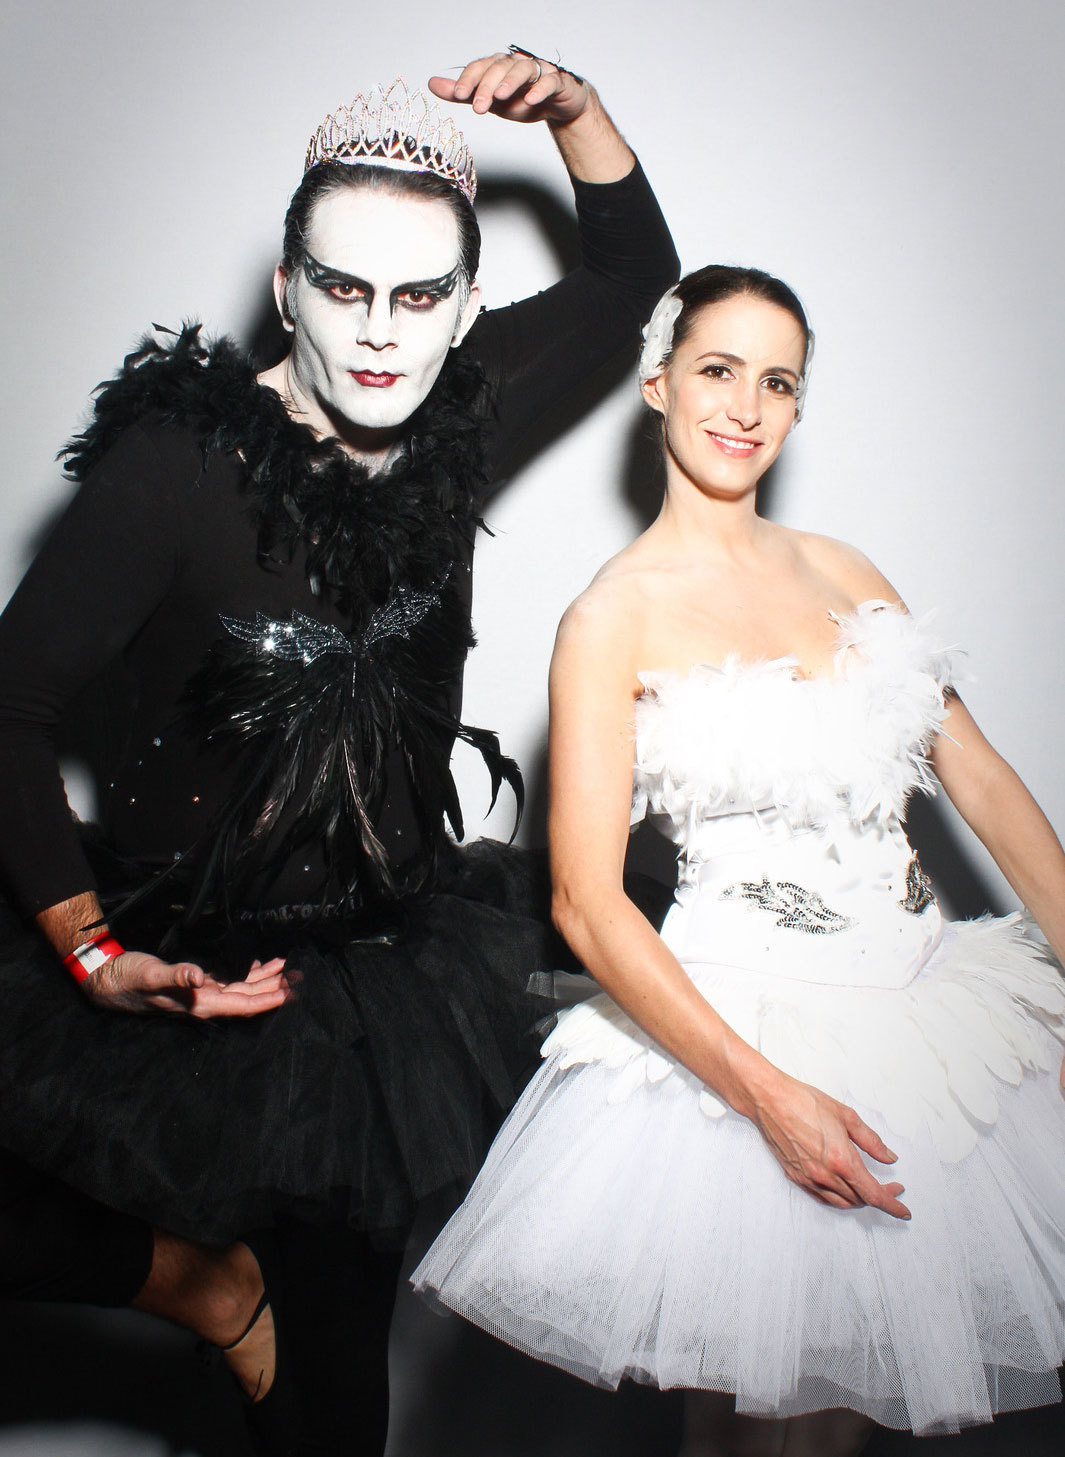 Black and white swan costumes